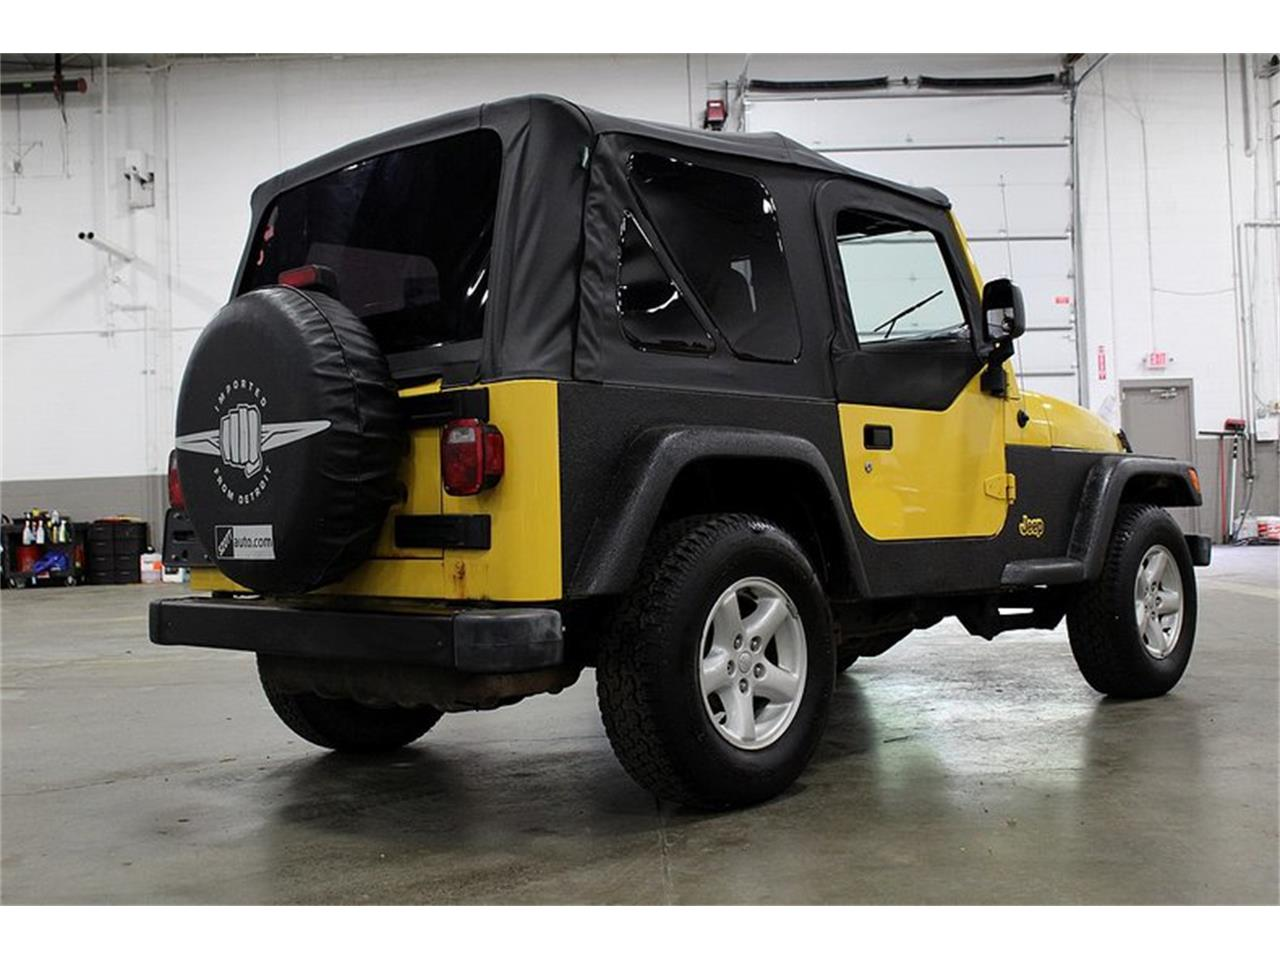 2005 Jeep Wrangler for sale in Kentwood, MI – photo 92